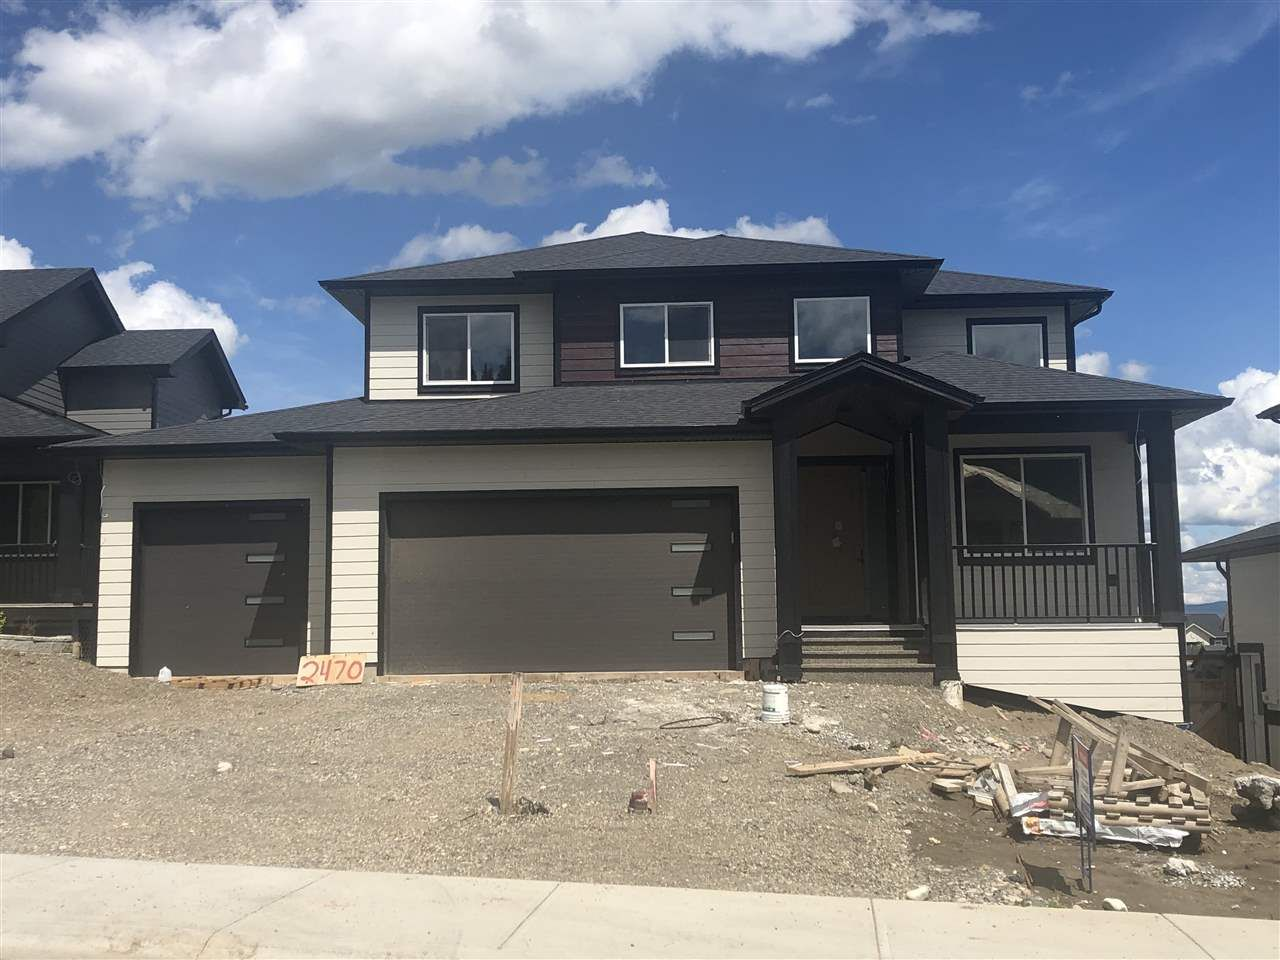 Main Photo: 2470 CARMICHAEL Place in Prince George: Charella/Starlane House for sale (PG City South (Zone 74))  : MLS®# R2458732